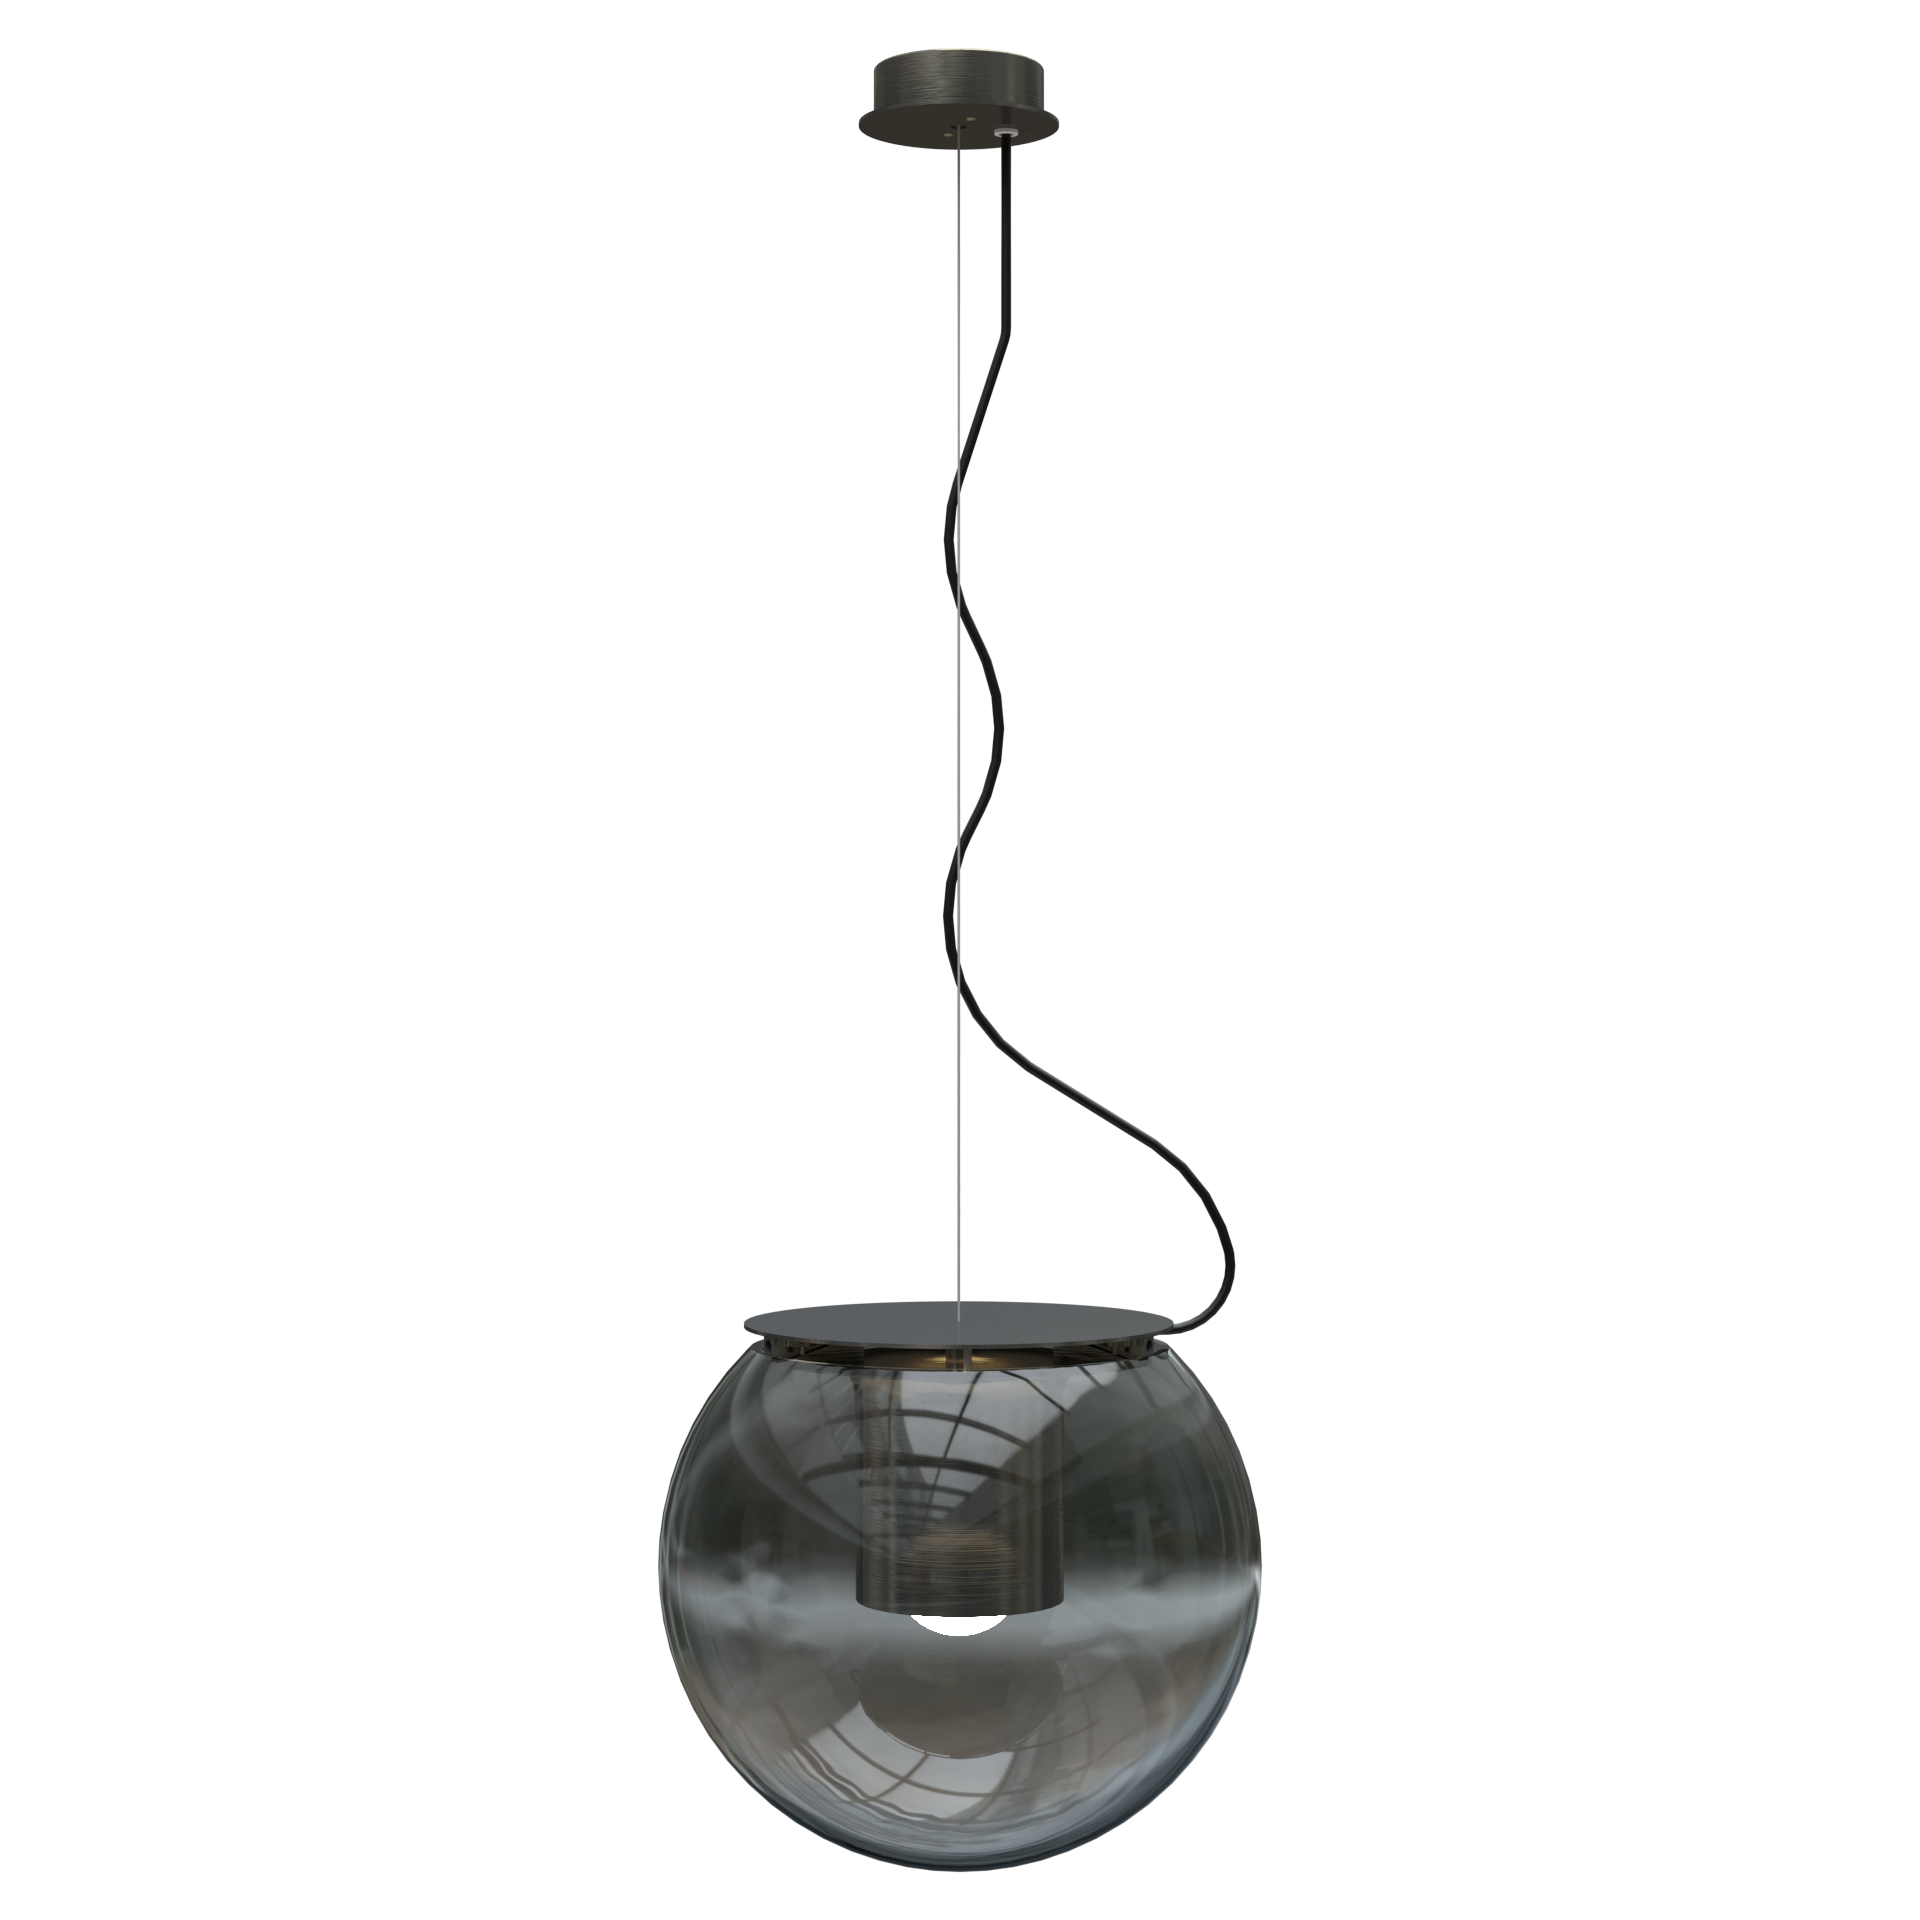 Suspension Light AI 01 Preview 2.png